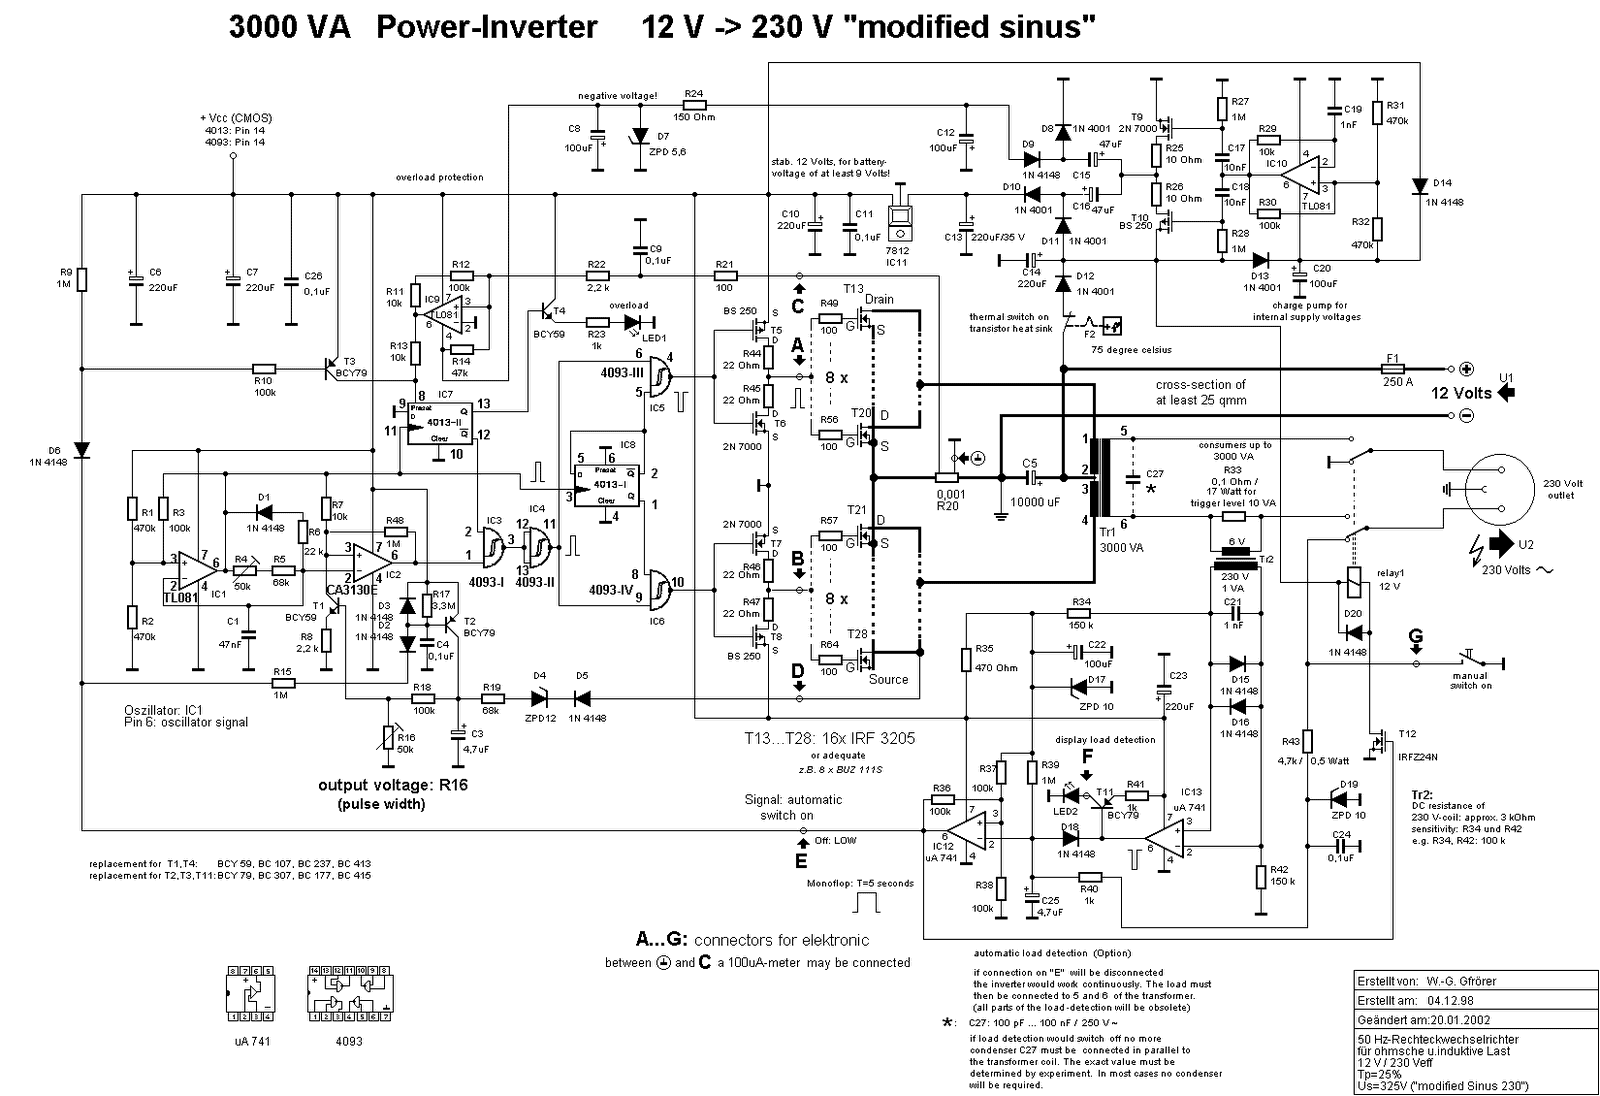 Treadmill Wiring Diagram besides 2000 F350 Glow Plug Relay Location in addition Lesson05 together with CTEKD250S in addition Diagram Of How A Fuel Cell Works. on wind generator wiring diagram